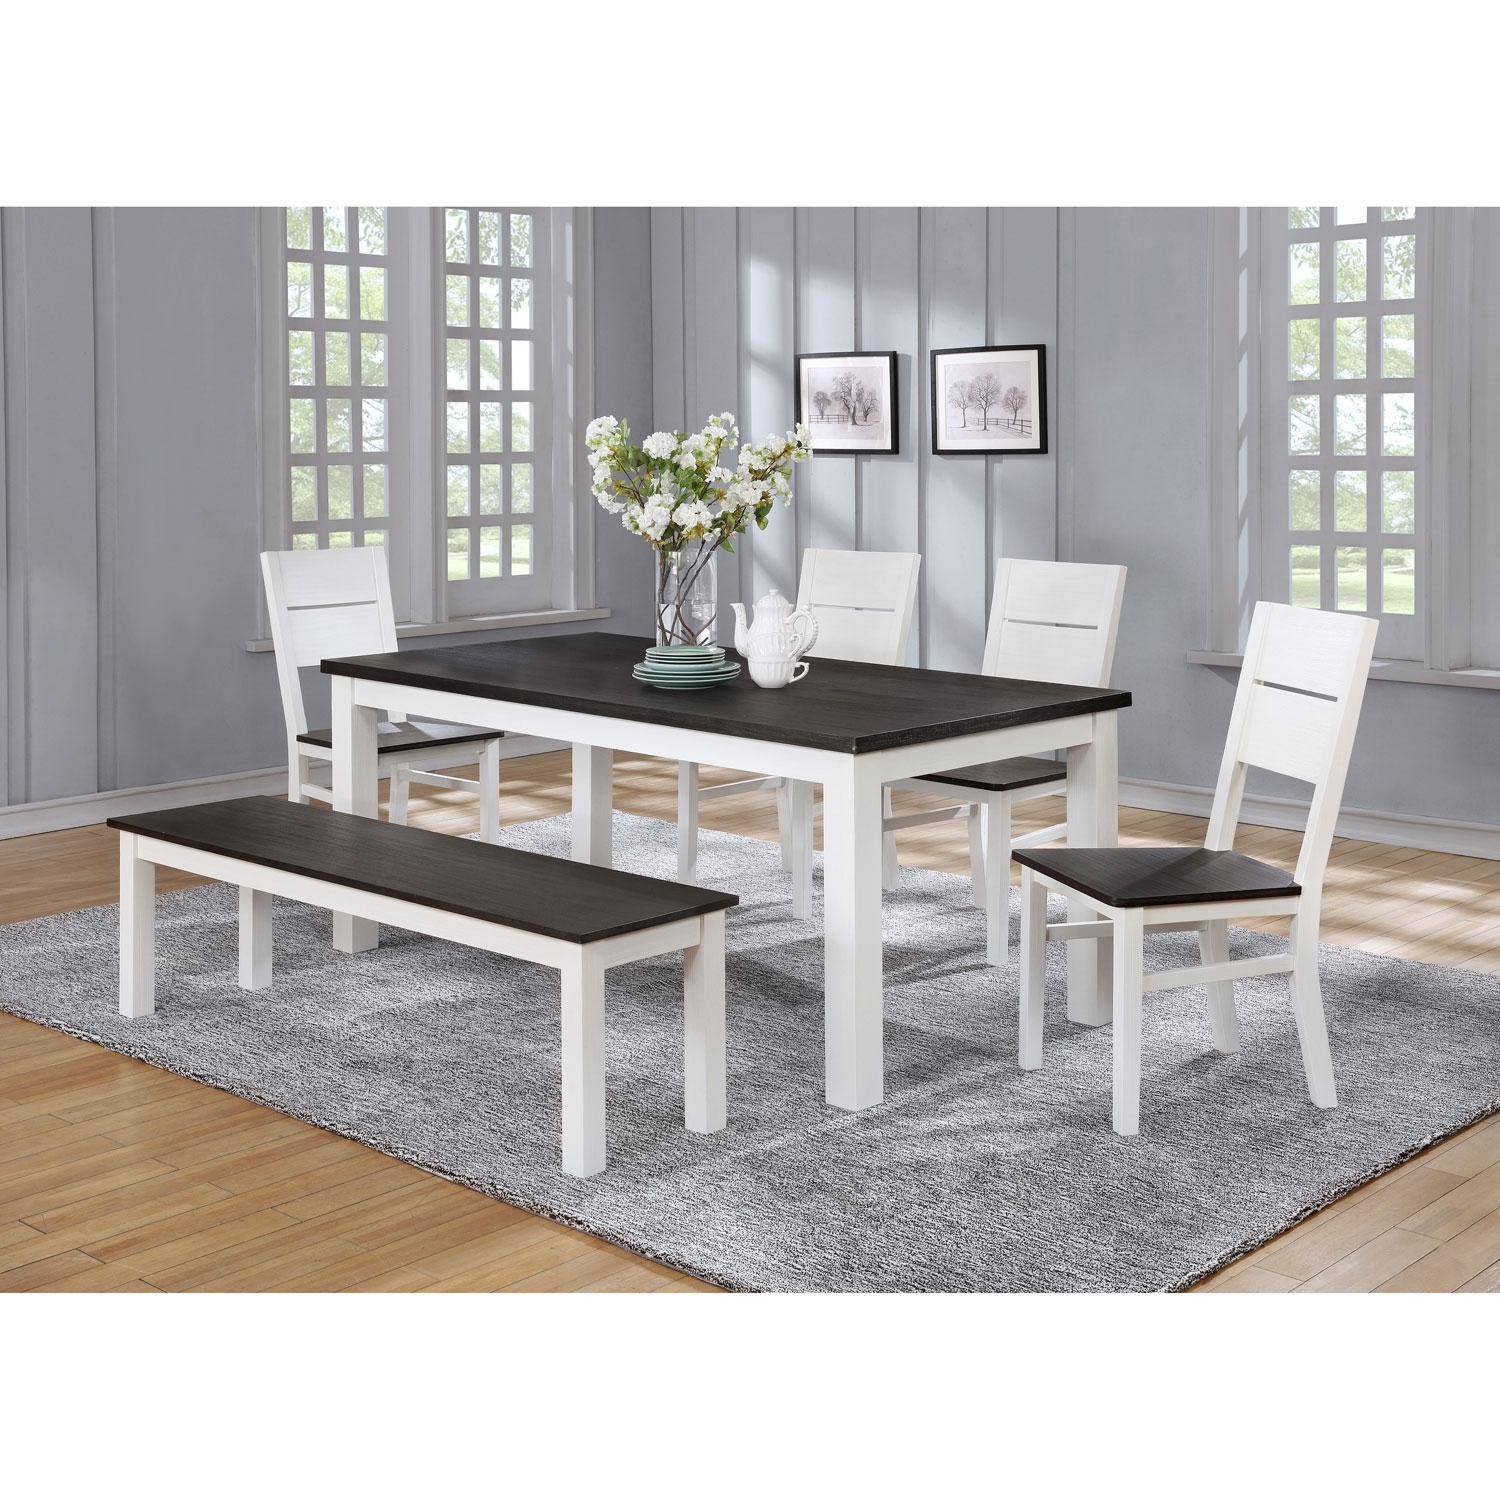 Lauren Traditional 6 Seating Rectangular Casual Dining Table – White Intended For Latest Laurent 7 Piece Rectangle Dining Sets With Wood And Host Chairs (Image 14 of 20)